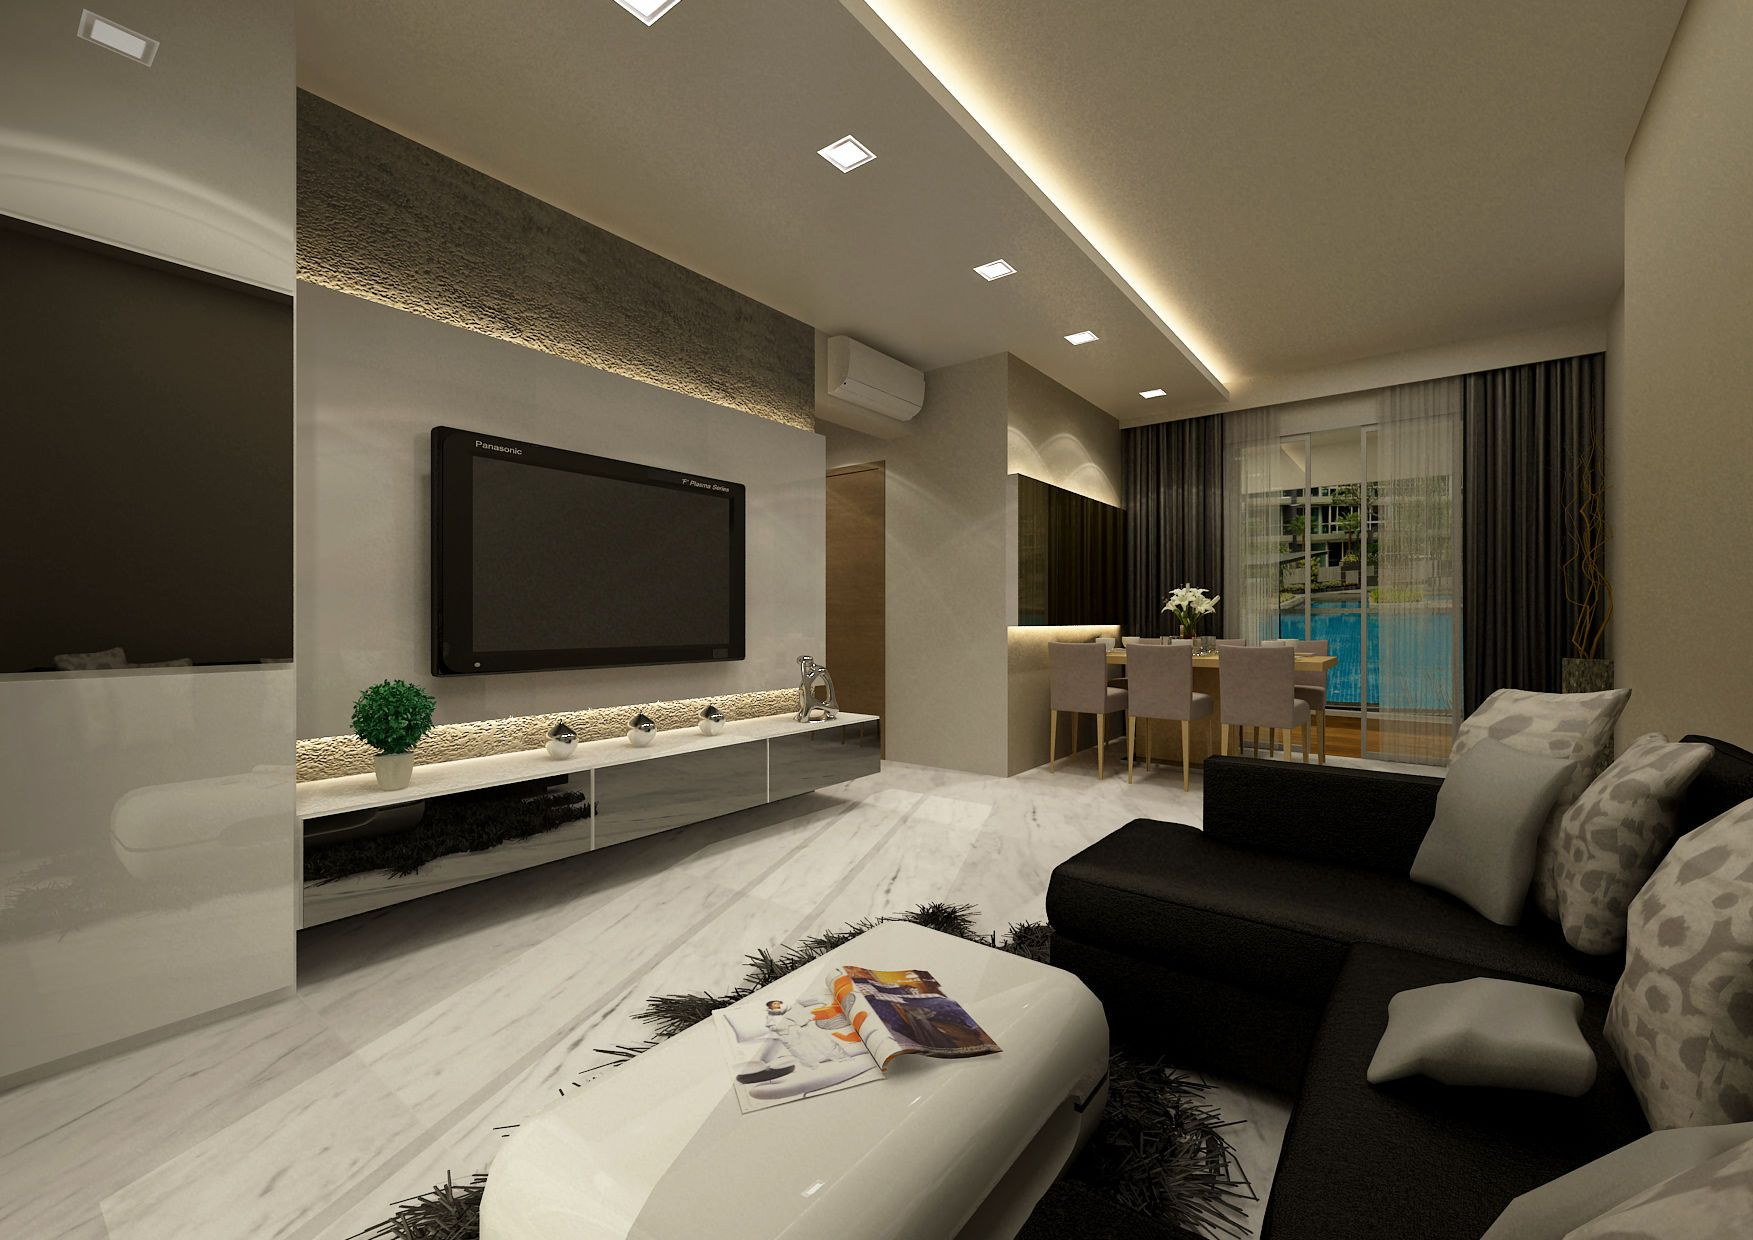 Best Interior Design For Living Room Brilliant Graphic Executive Condominium Interior Design  Renovation Inspiration